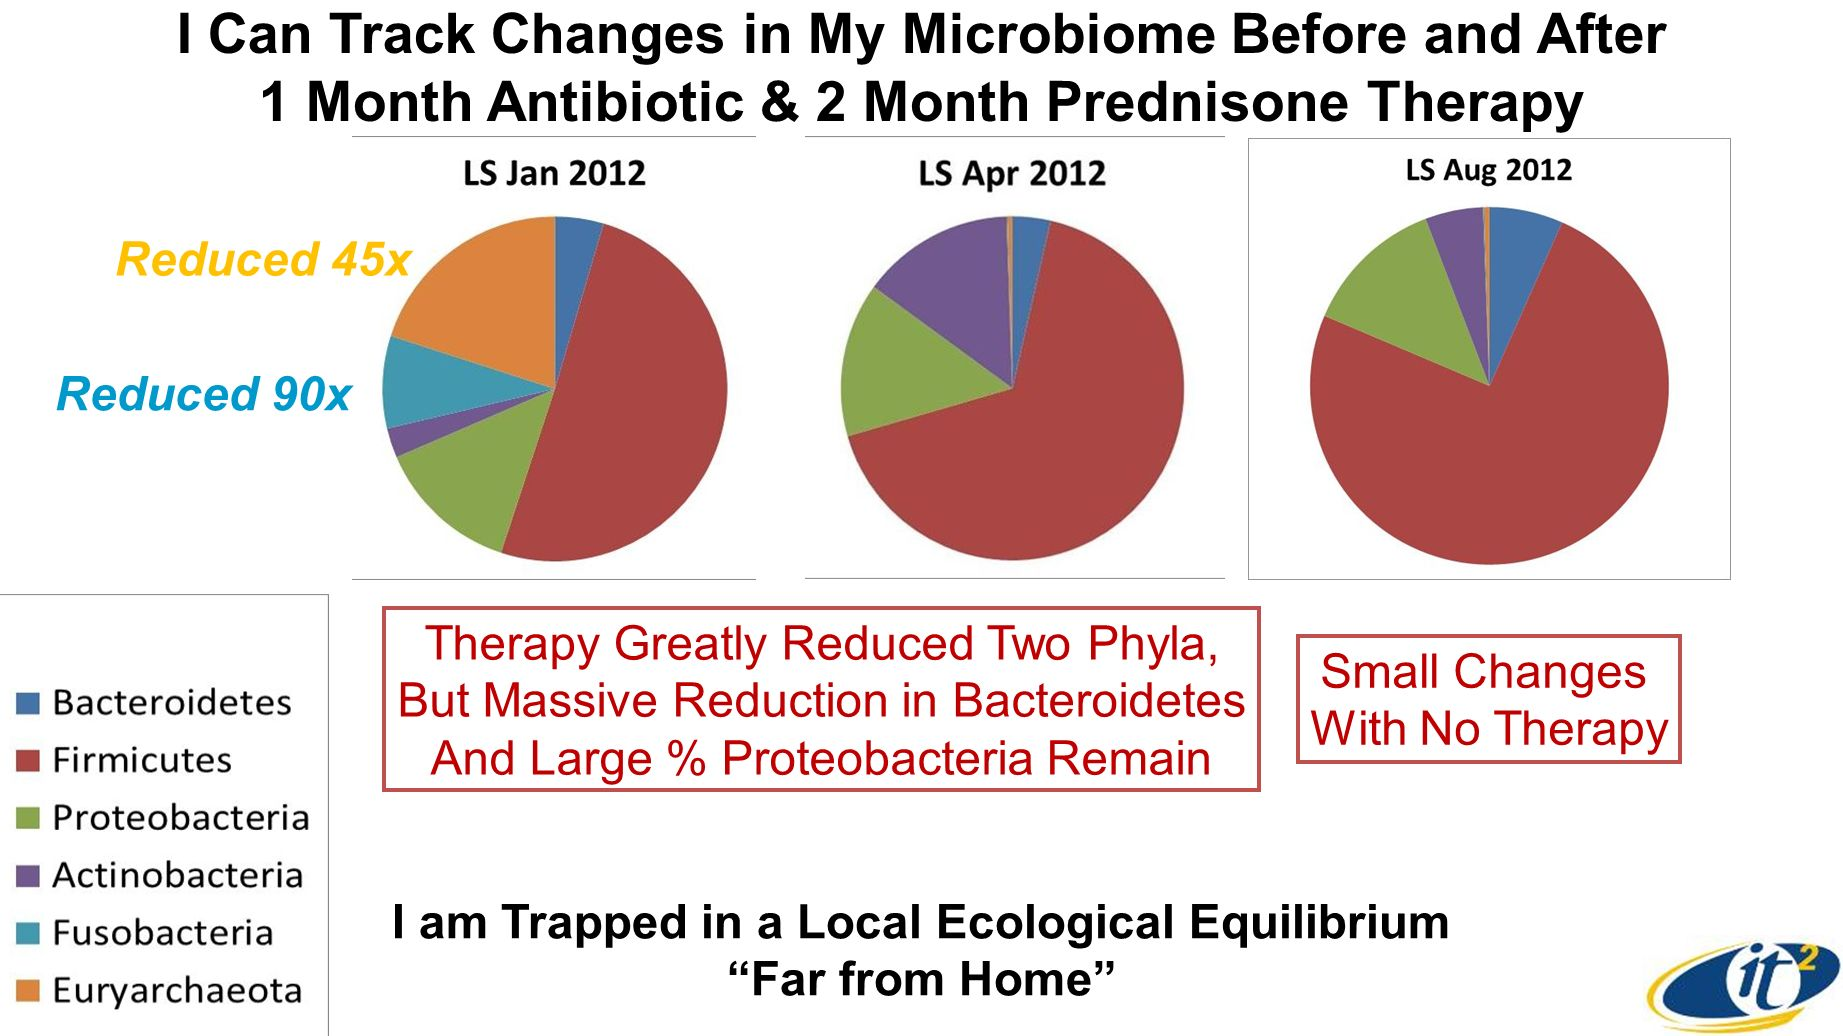 I Can Track Changes in My Microbiome Before and After 1 Month Antibiotic & 2 Month Prednisone Therapy Therapy Greatly Reduced Two Phyla, But Massive Reduction in Bacteroidetes And Large % Proteobacteria Remain Reduced 45x Reduced 90x Small Changes With No Therapy I am Trapped in a Local Ecological Equilibrium Far from Home